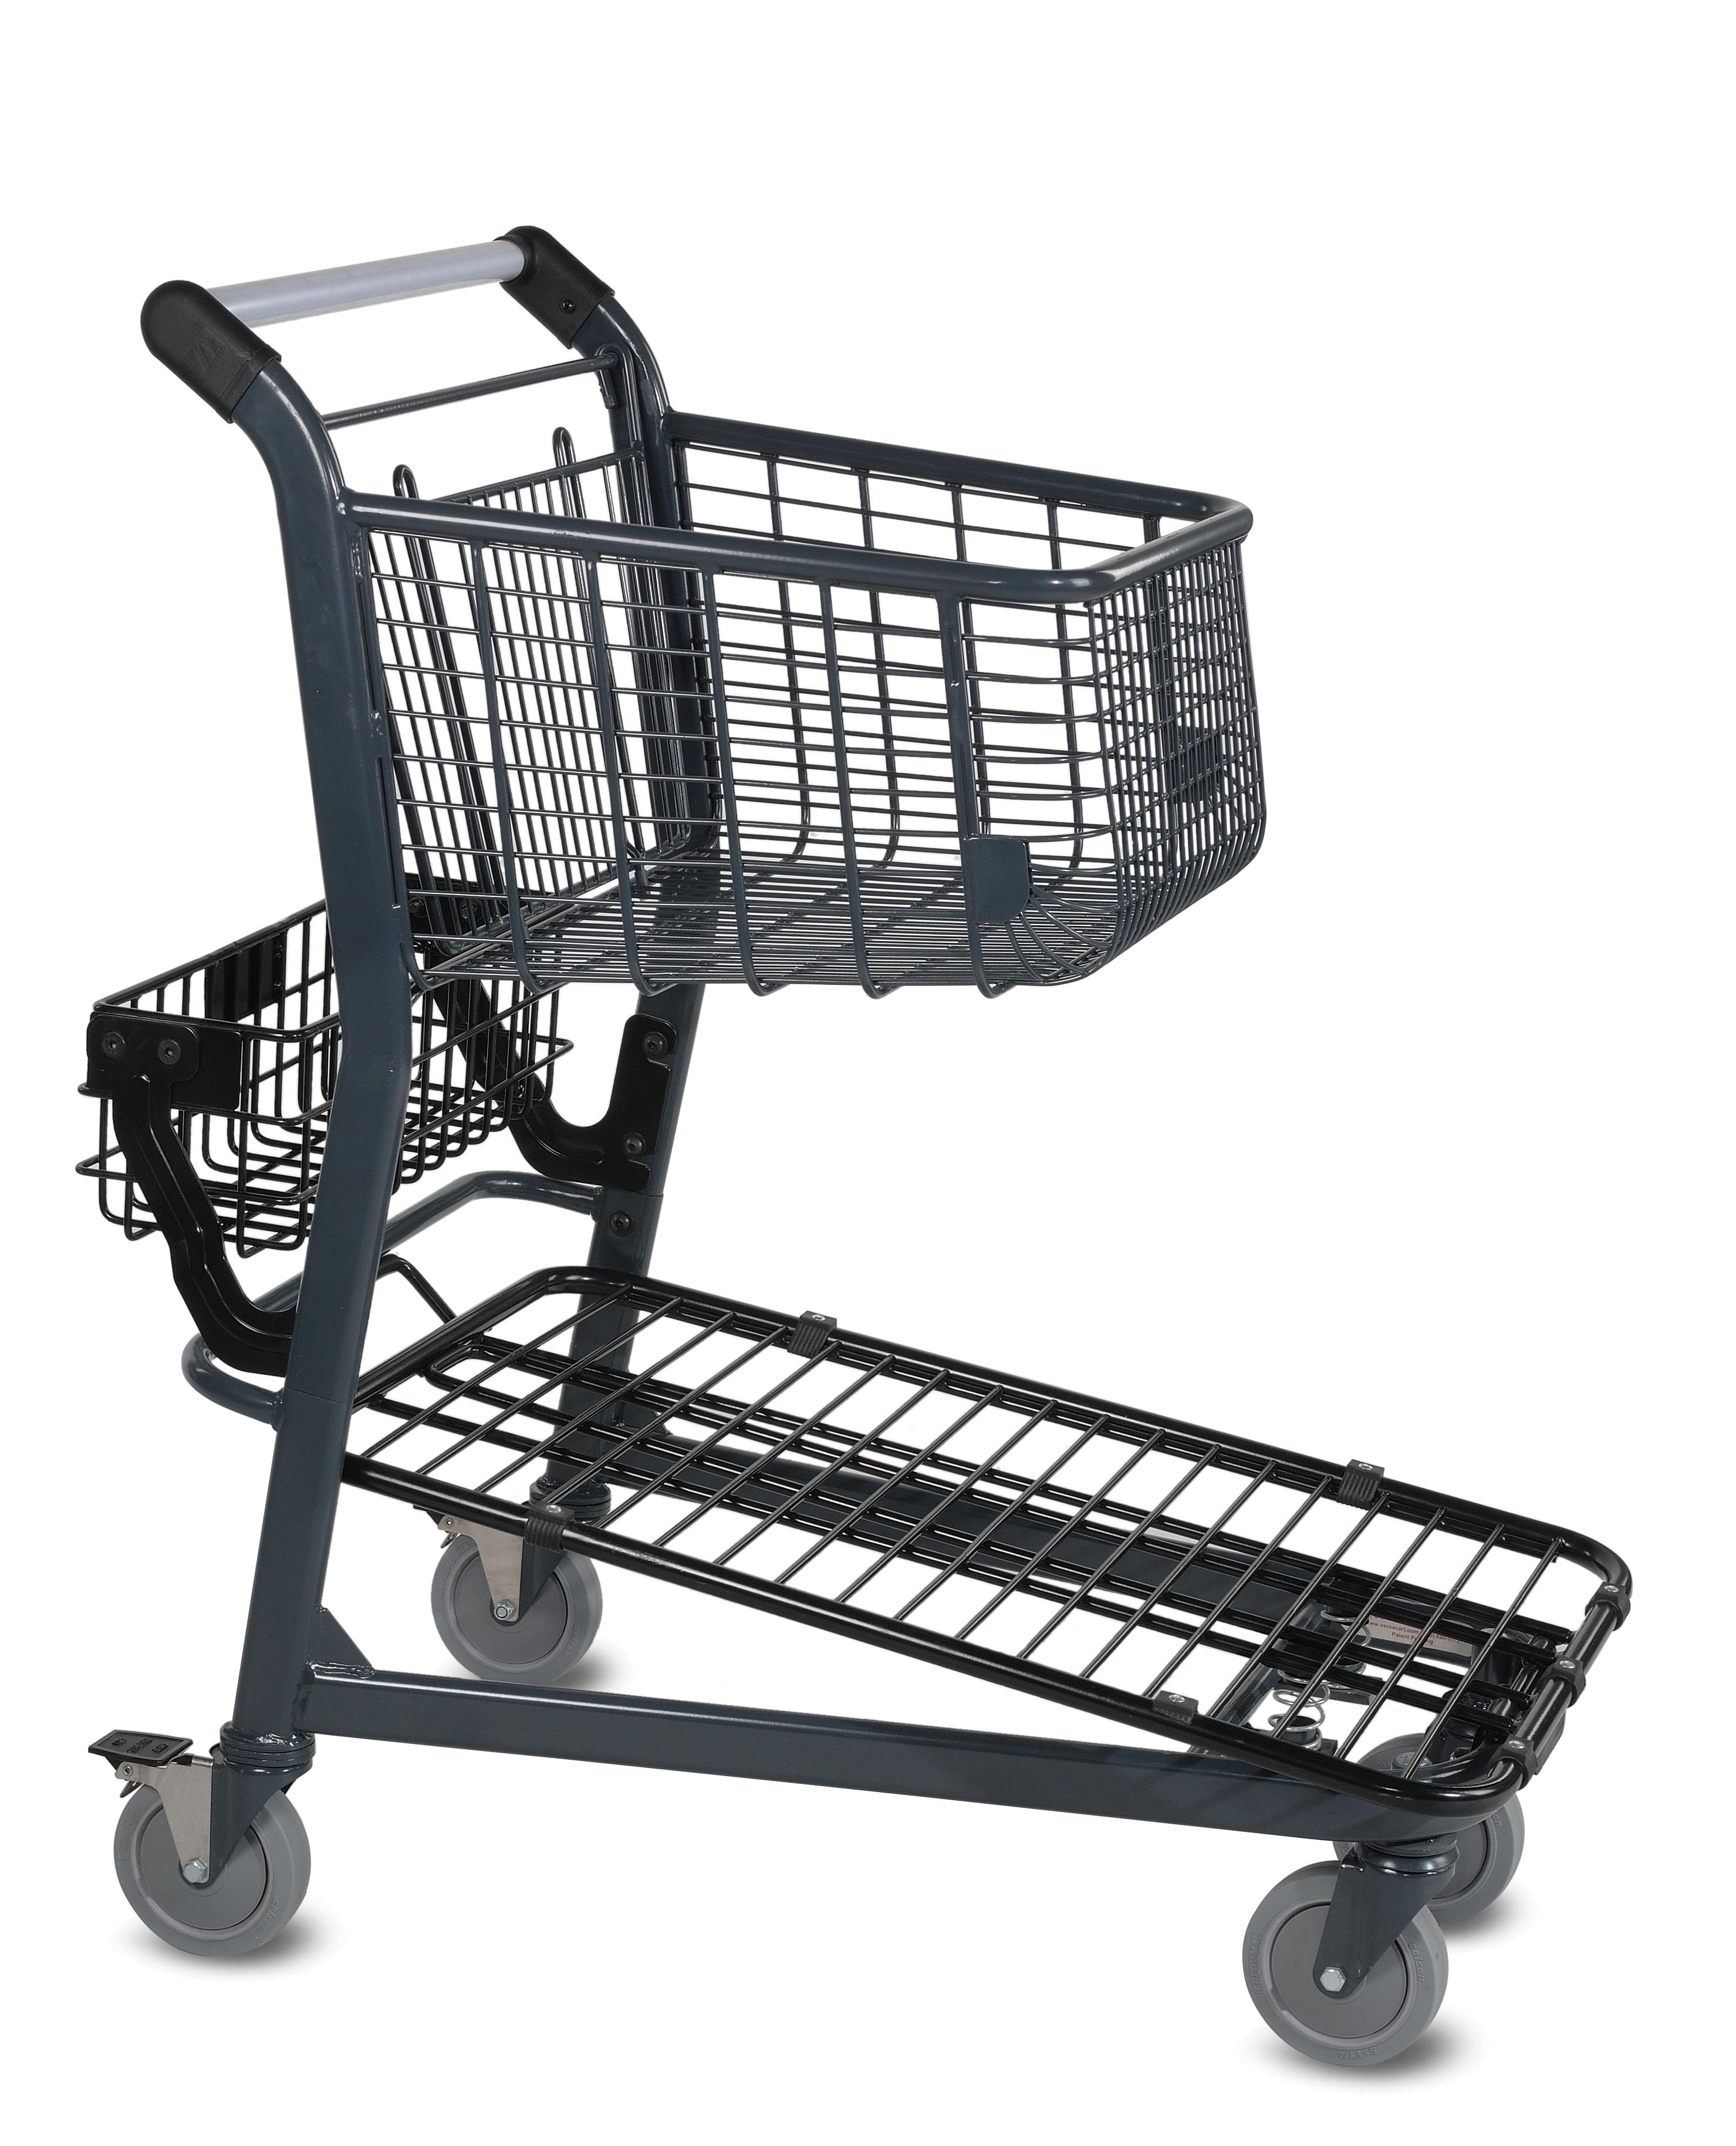 Eztote #646 Metal Shopping Cart W Child Seat  Indoff. Alamo Heights Pet Clinic Hotel In Sydney City. Permanent Cosmetics Training. Call Center Requirements Outlook Crm Software. Free Medical Billing Classes. Get An Online Phone Number Whiter Teeth Fast. Dataflux Data Management Studio. Emergency Response Procedures. Data Center Design Considerations